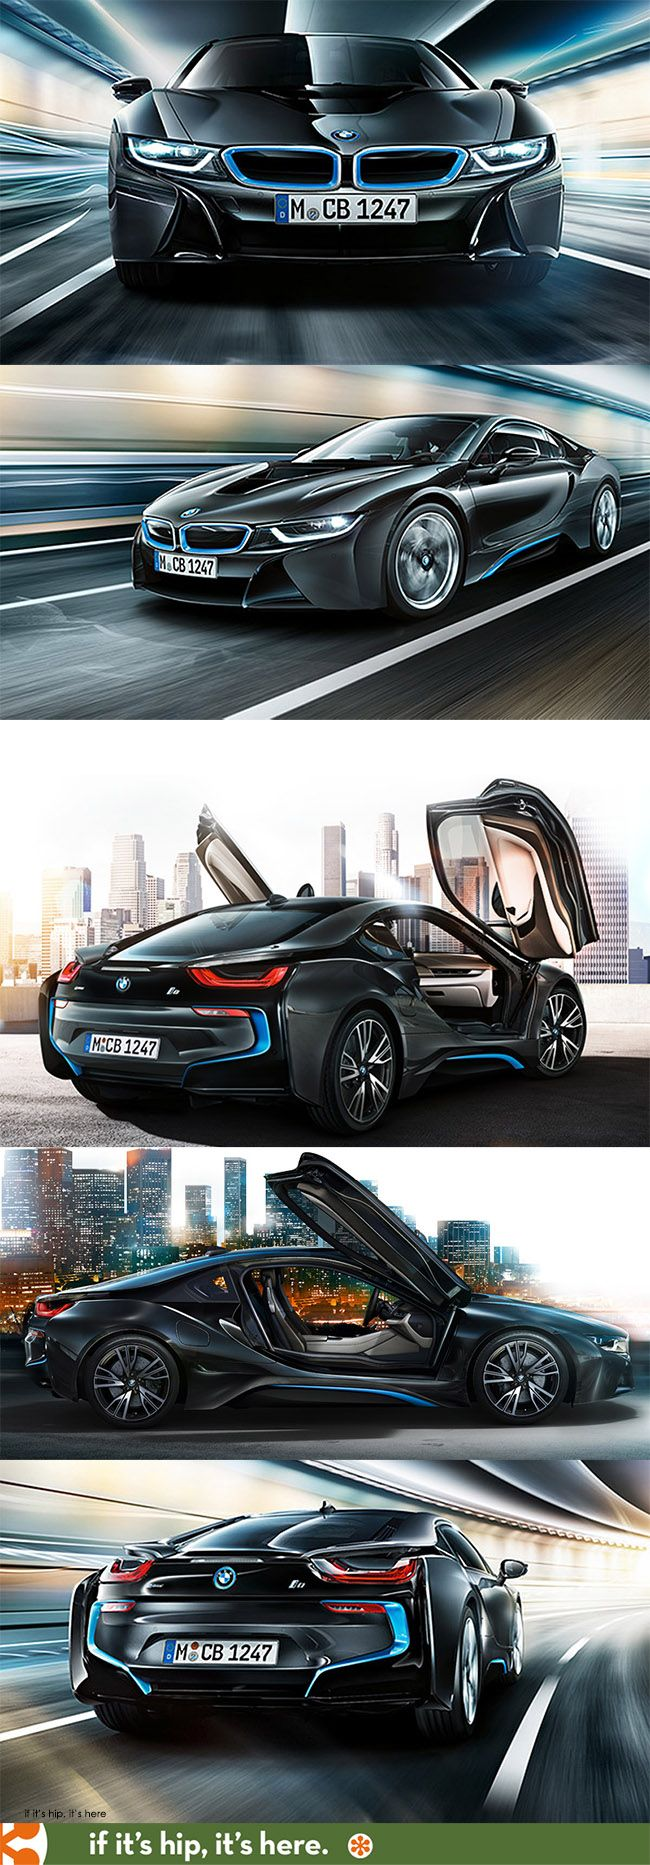 The BMW i8 hybrid plug in with gullwing doors. Comes with Louis Vuitton luggage, too.